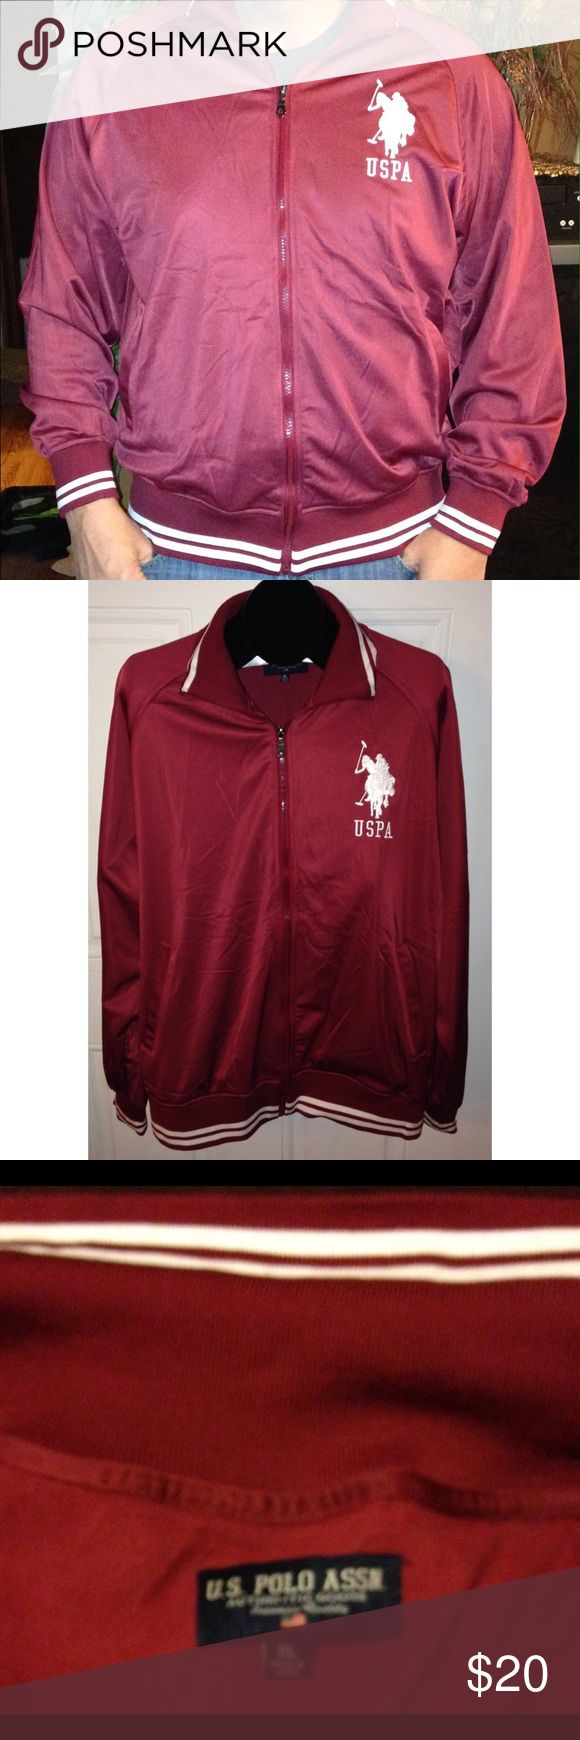 "Men's United States Polo Association Jacket This is a men's burgundy United States Polo Association Jacket. It is an XL with measurements: pit-pit:25"" and top-bottom: 31 1/2"". It is 100% polyester. It is in great condition. Jackets & Coats Bomber & Varsity"